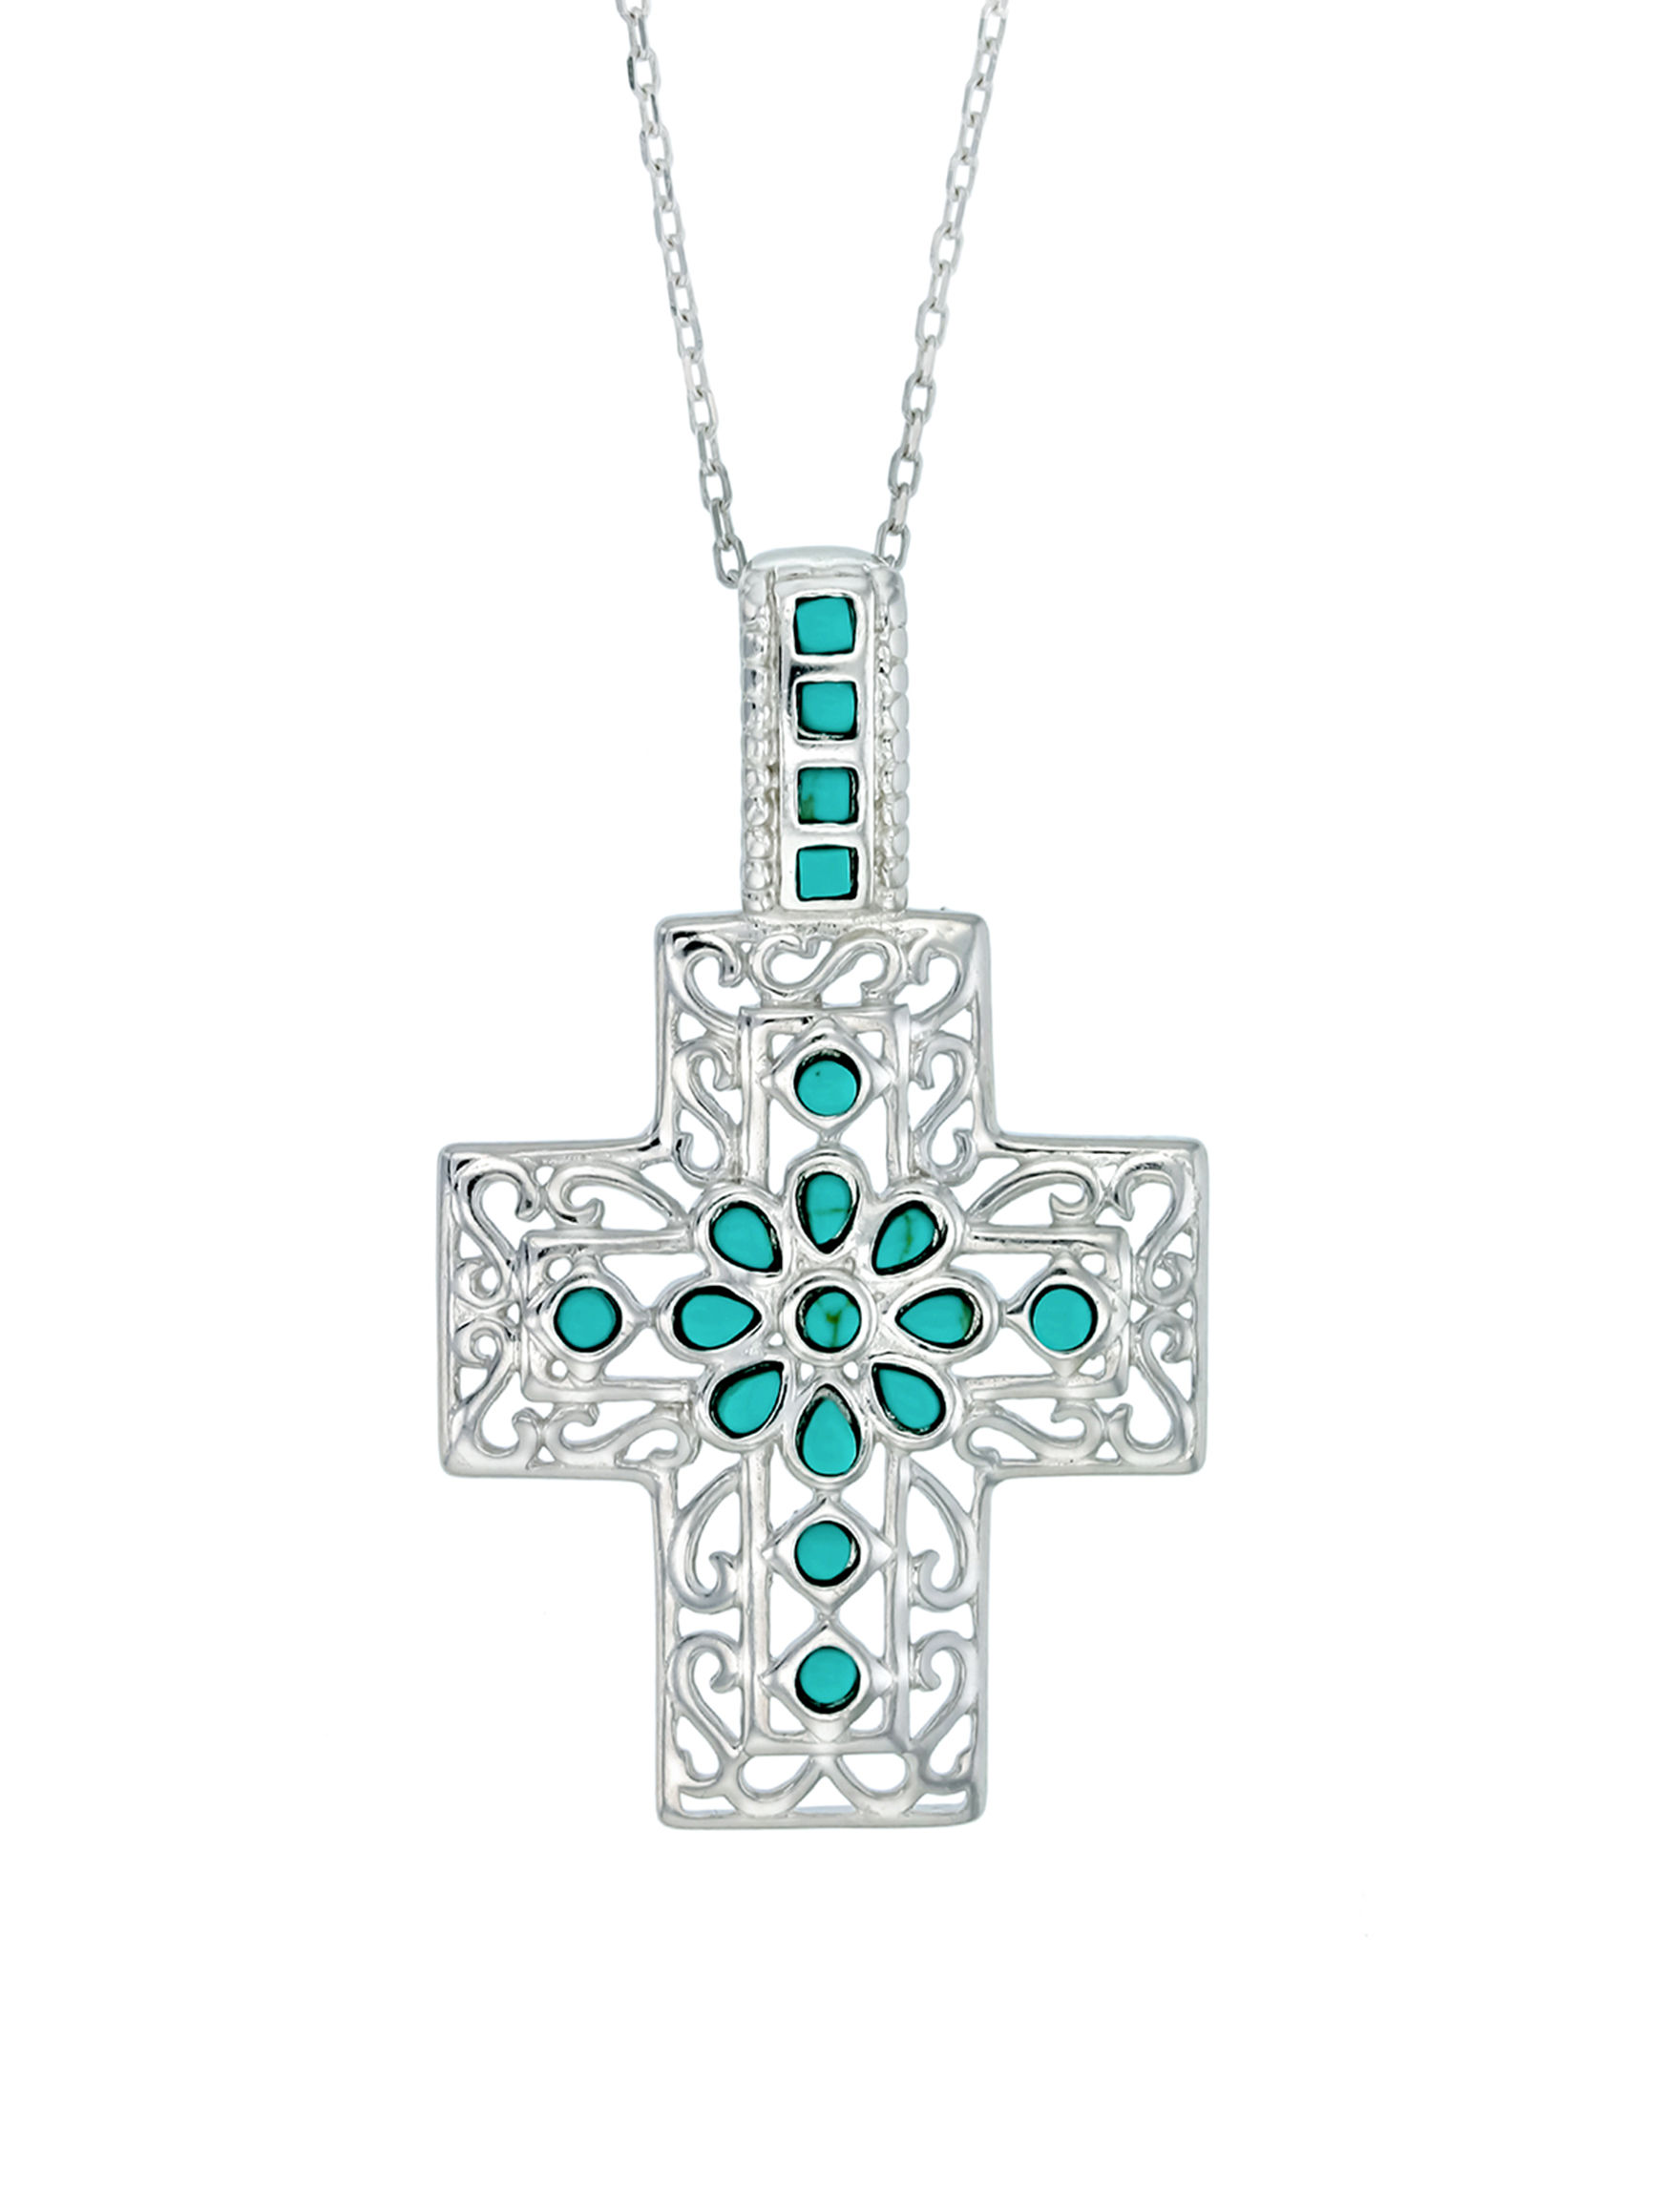 Kencraft Silver / Turquoise Earrings Necklaces & Pendants Fine Jewelry